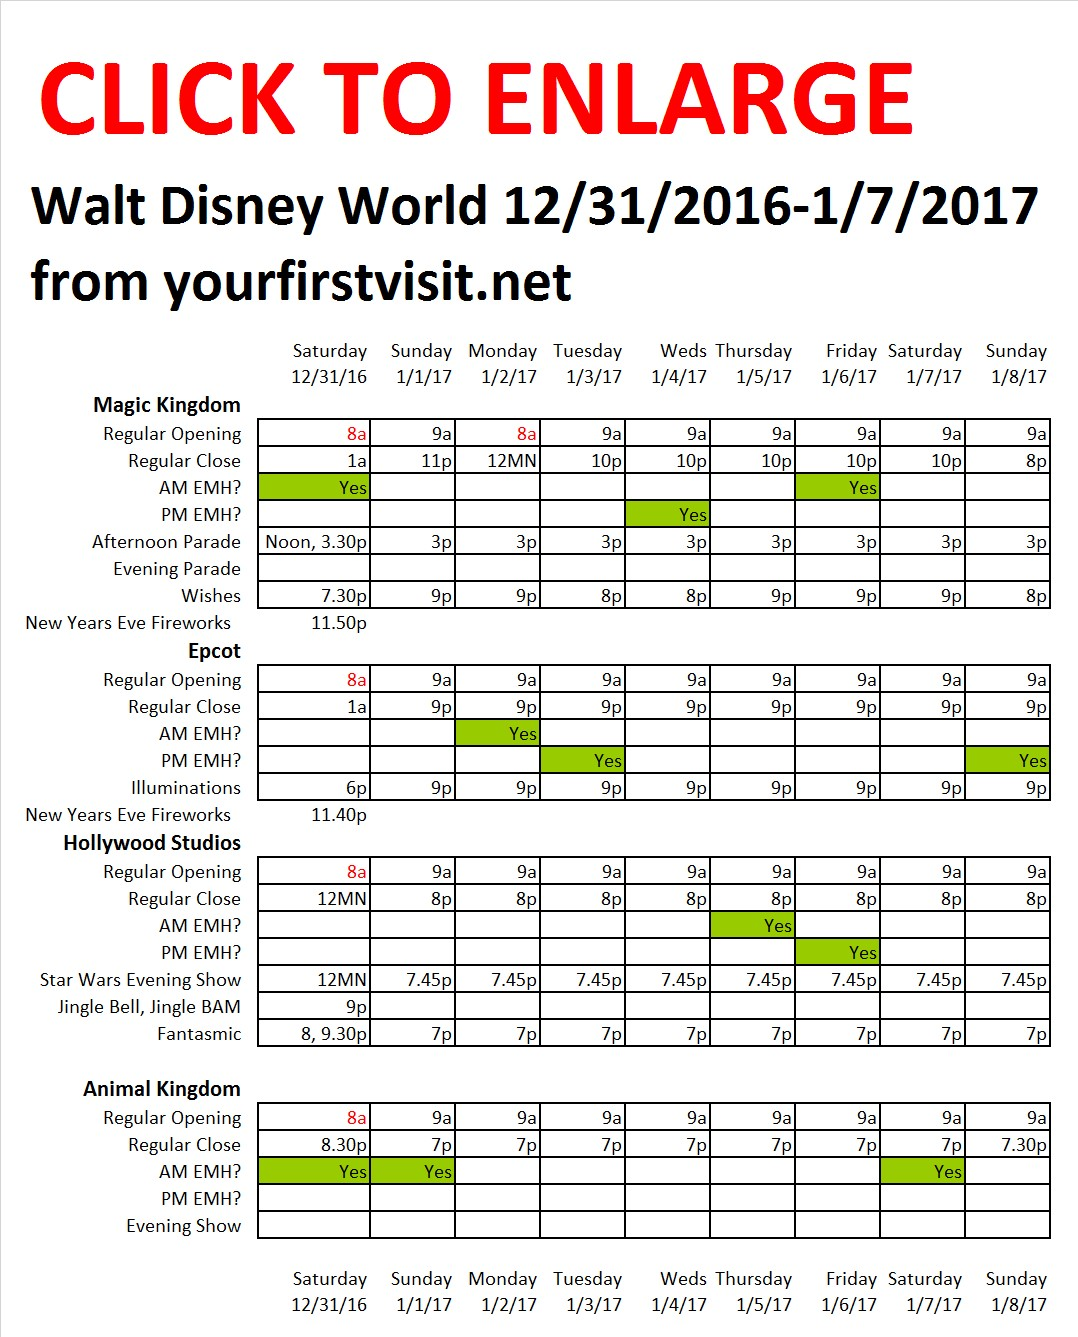 disney-world-12-31-16-to-1-8-17-from-yourfirstvisit-net